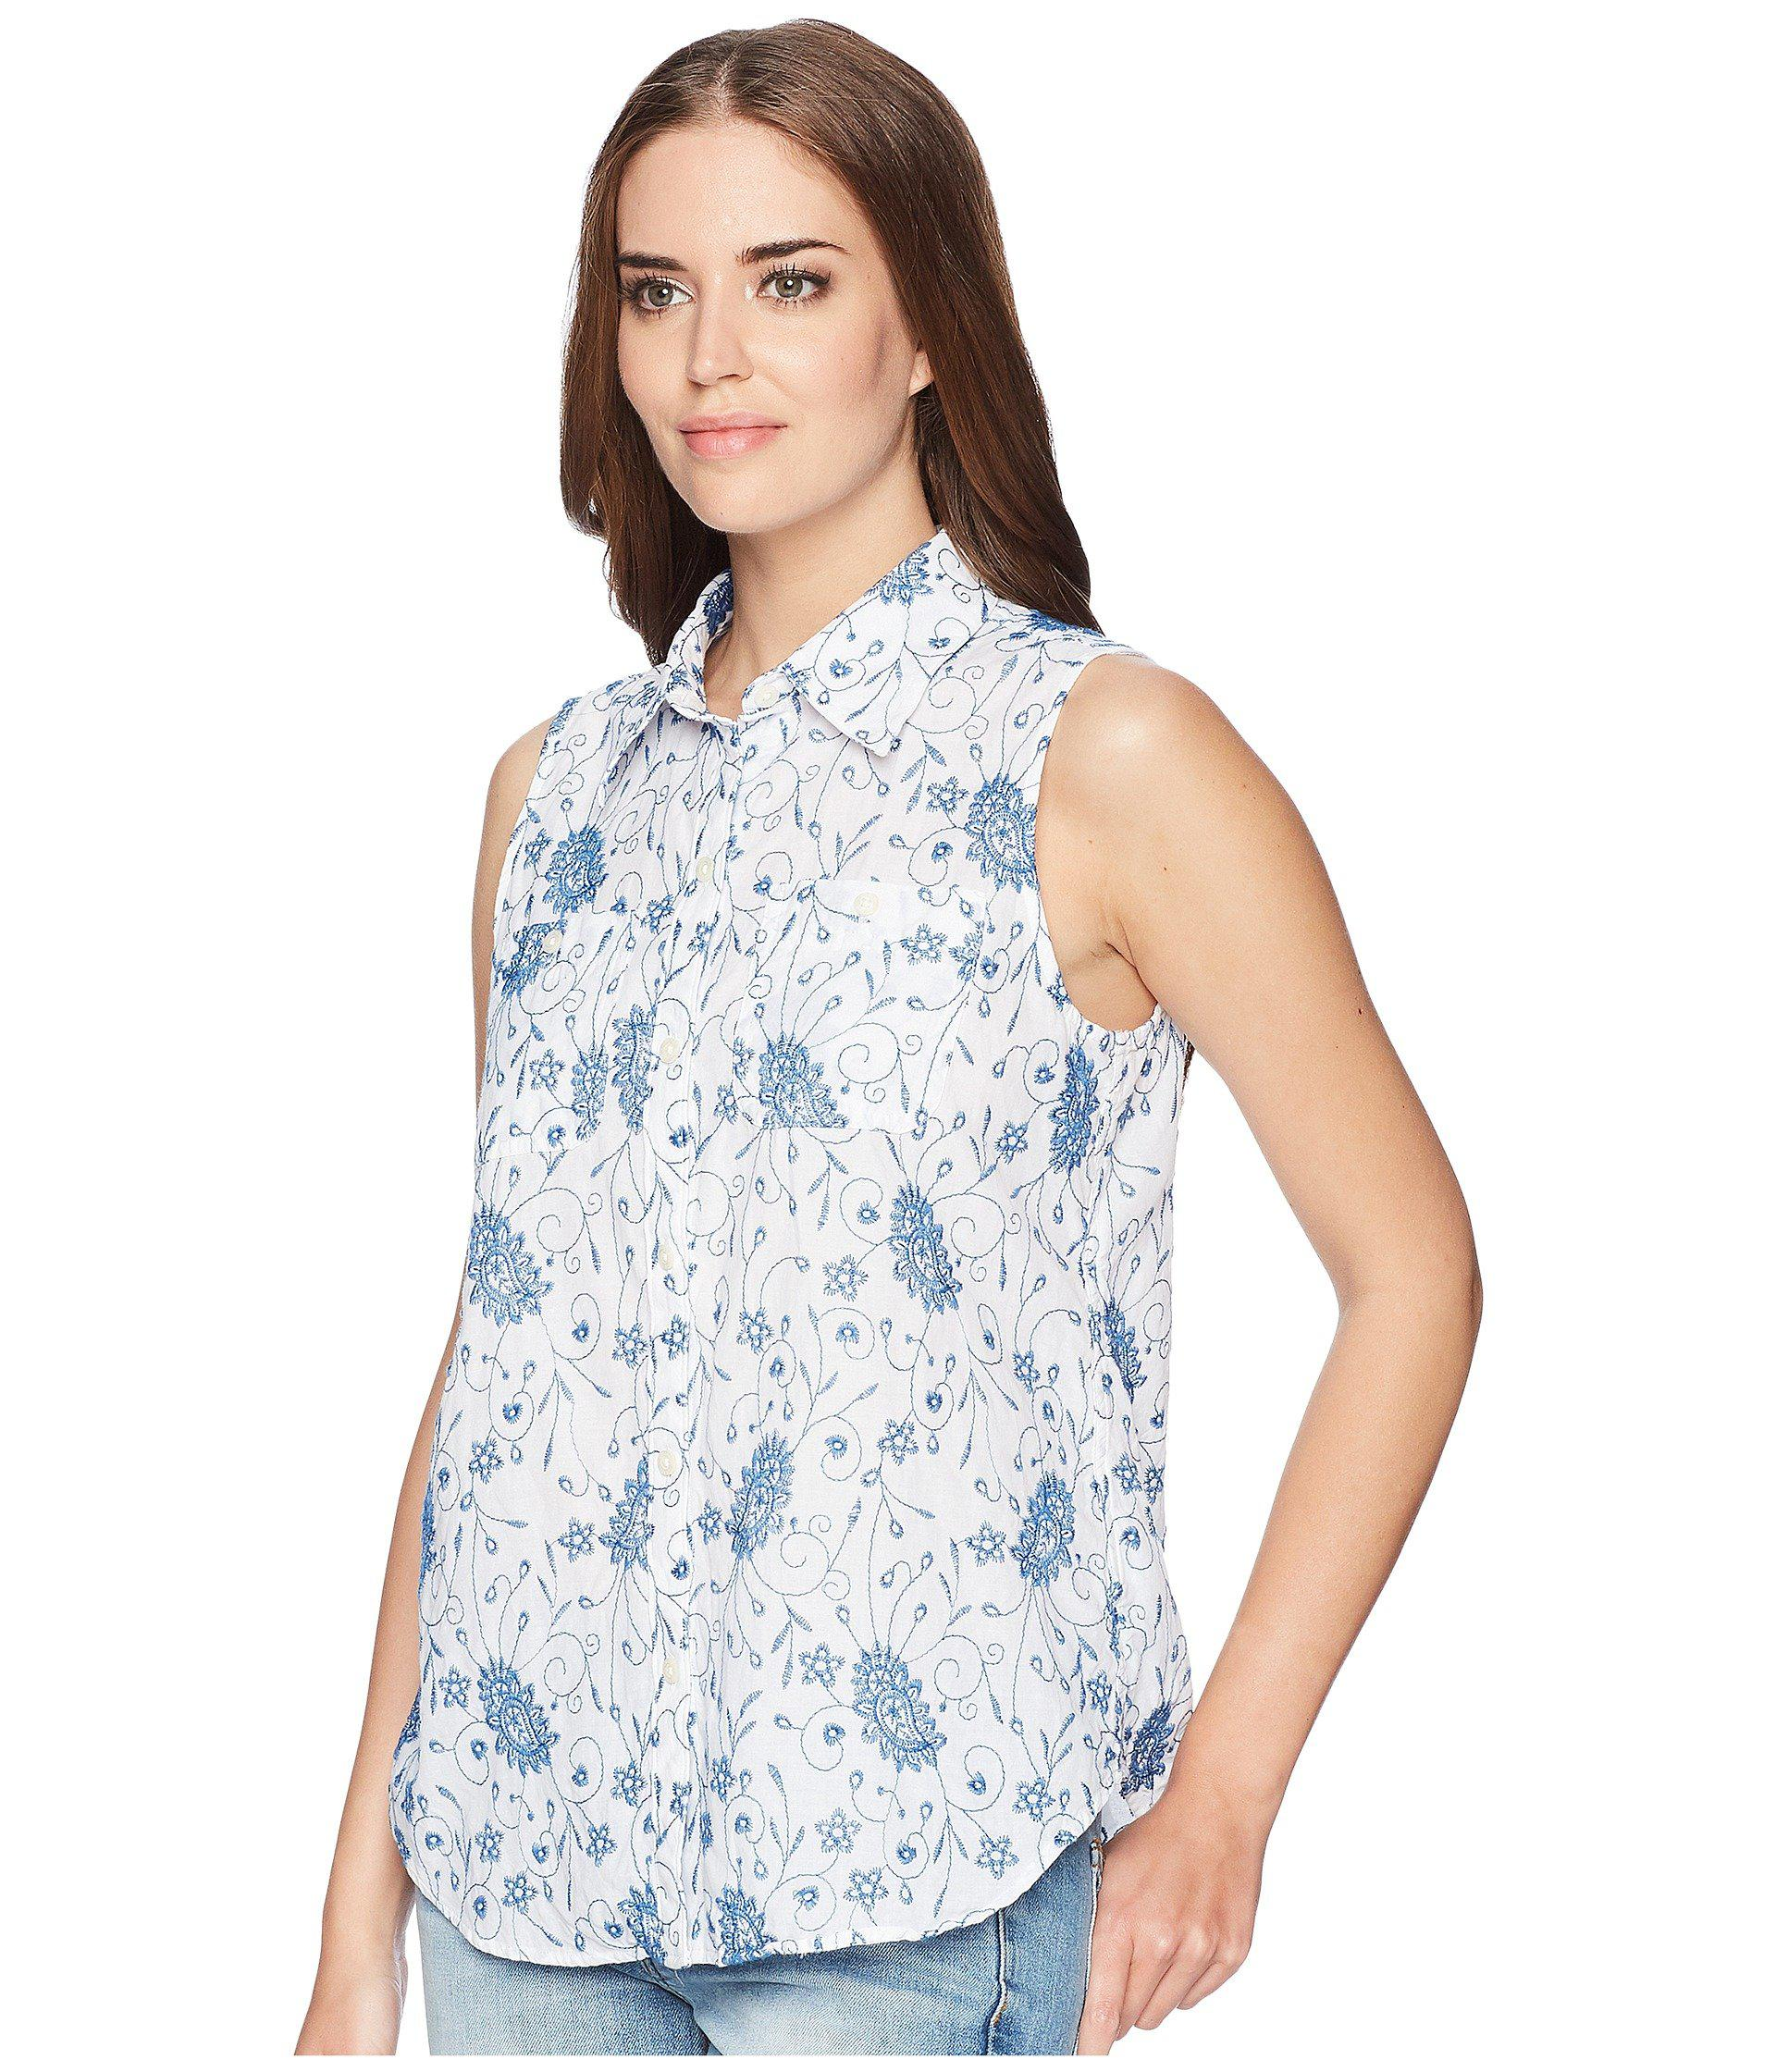 873ff66cce2 Chaps - Blue Floral-embroidered Sleeveless Shirt - Lyst. View fullscreen